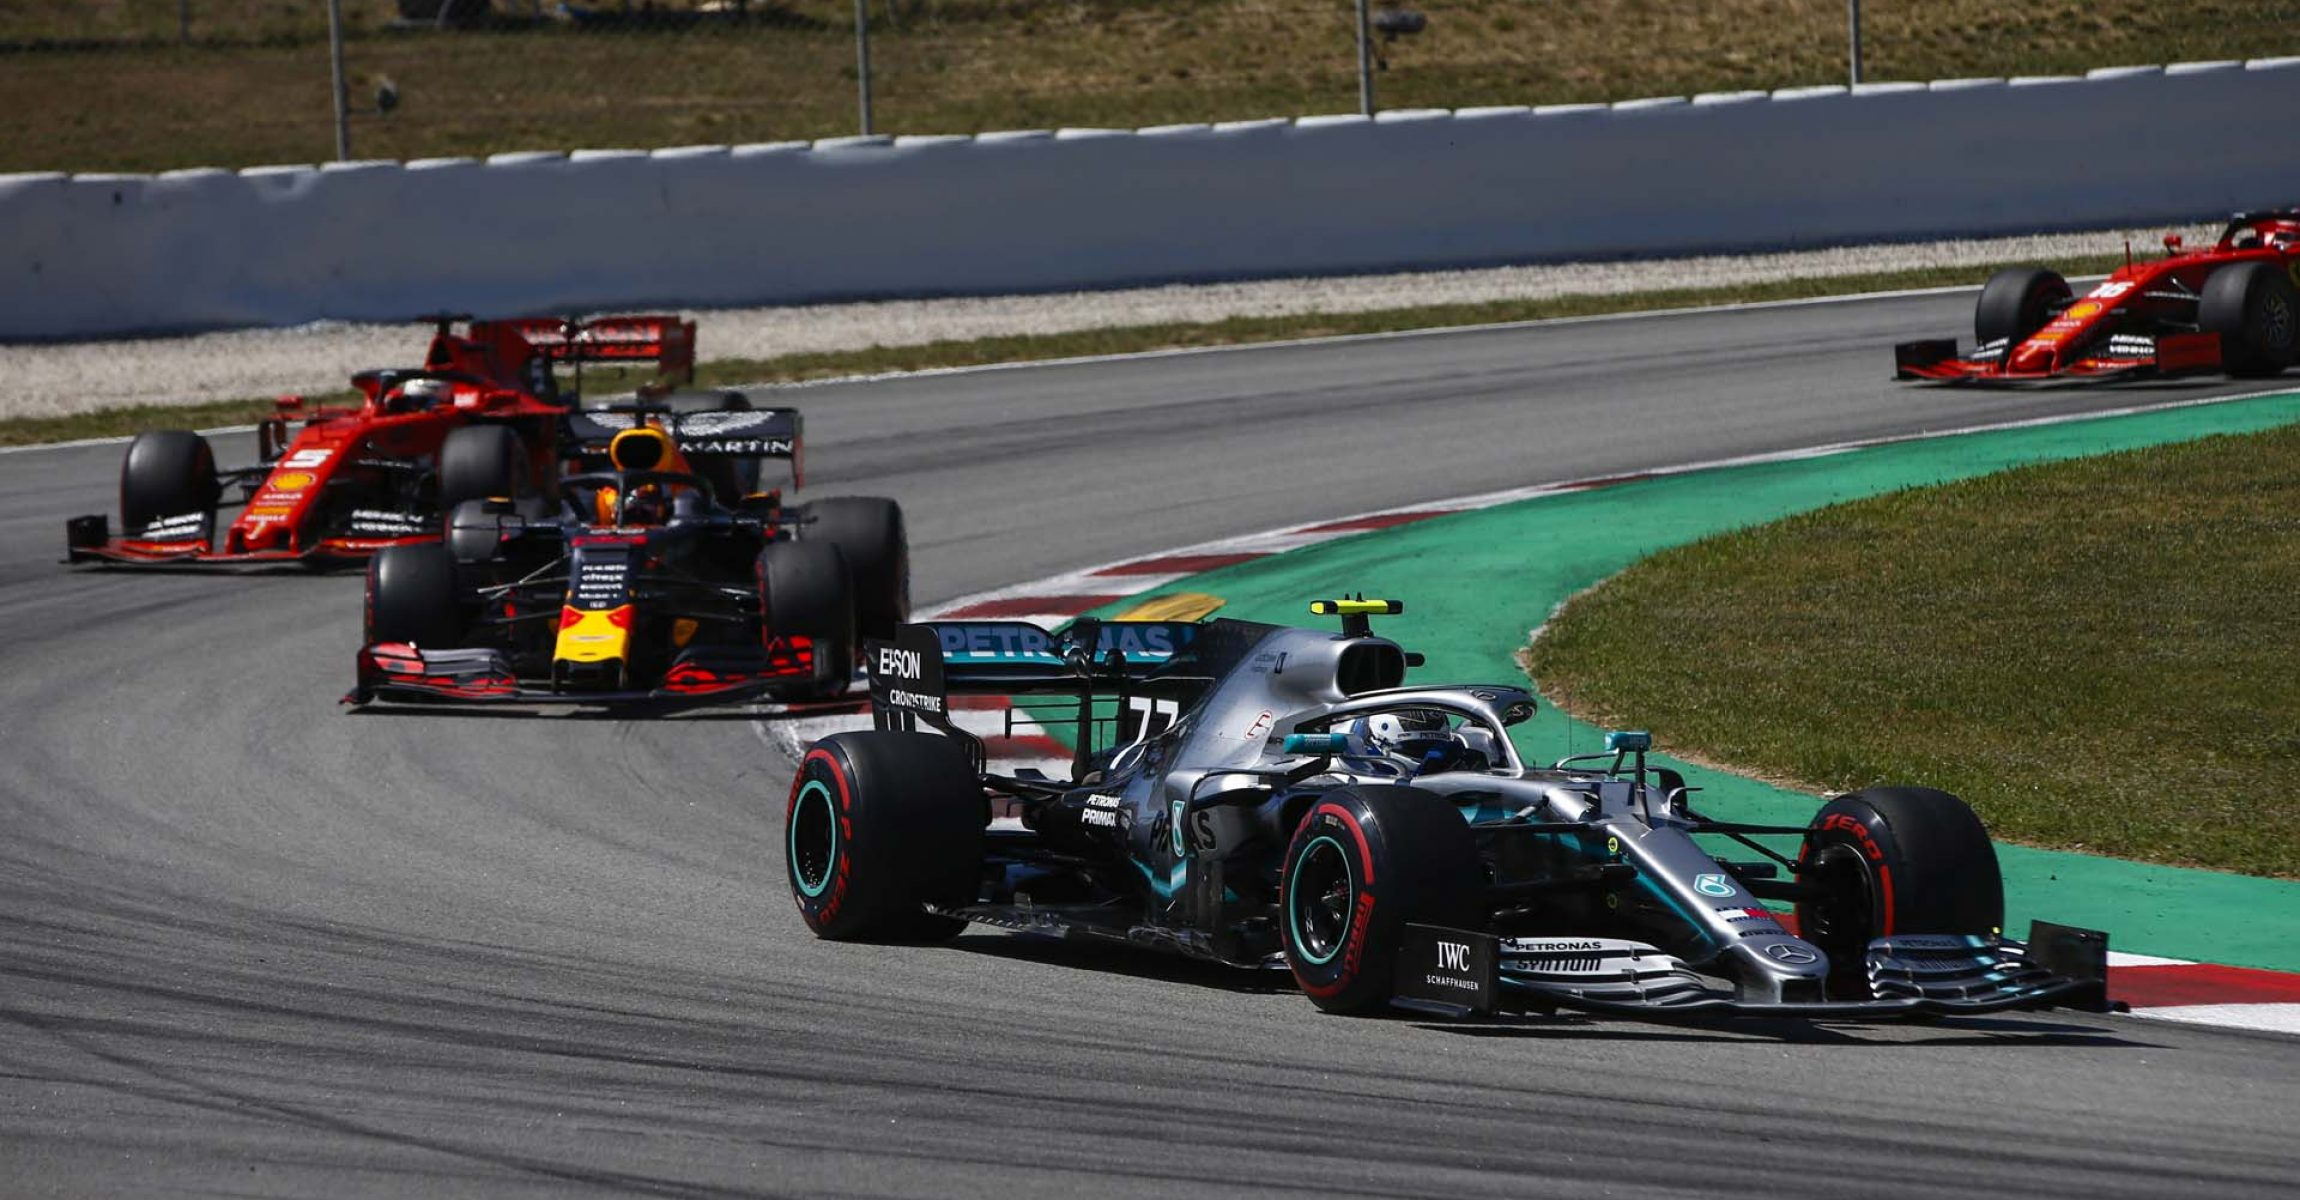 2019 Spanish Grand Prix, Sunday - LAT Images Valtteri Bottas, Mercedes, Red Bull, Ferrari